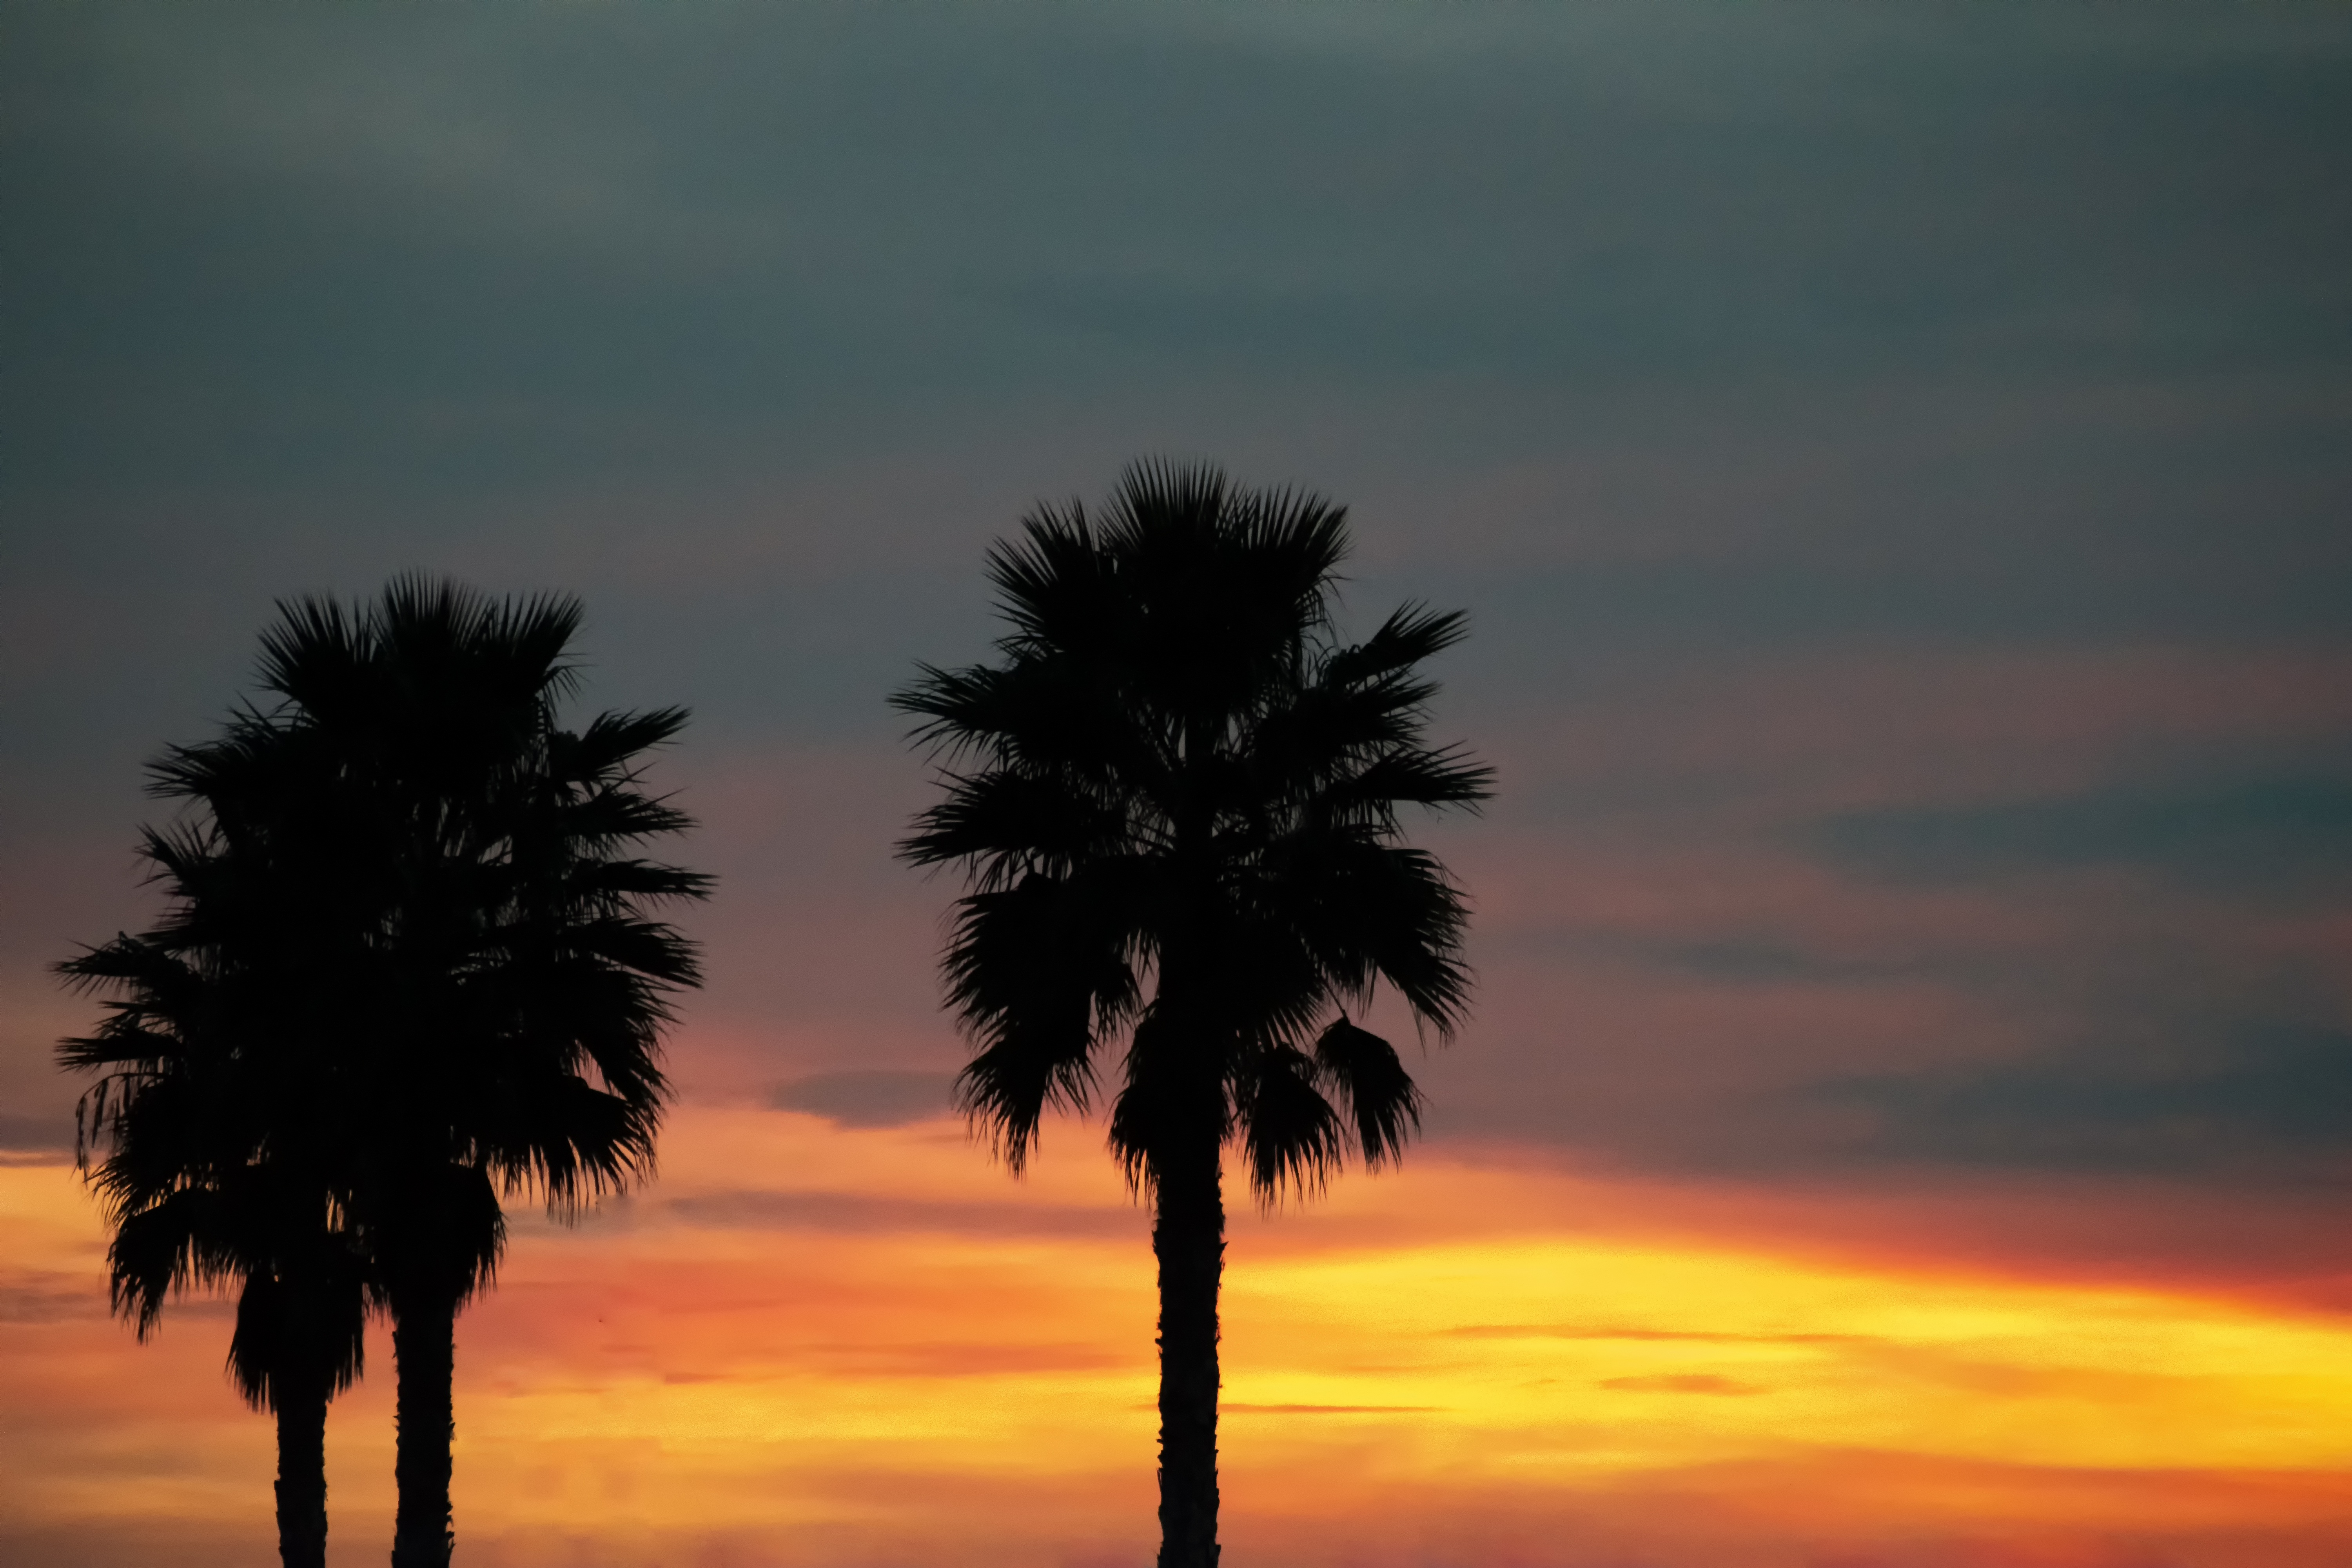 80625 download wallpaper Nature, Palm, Sunset, Sky, Tropics, Palms screensavers and pictures for free